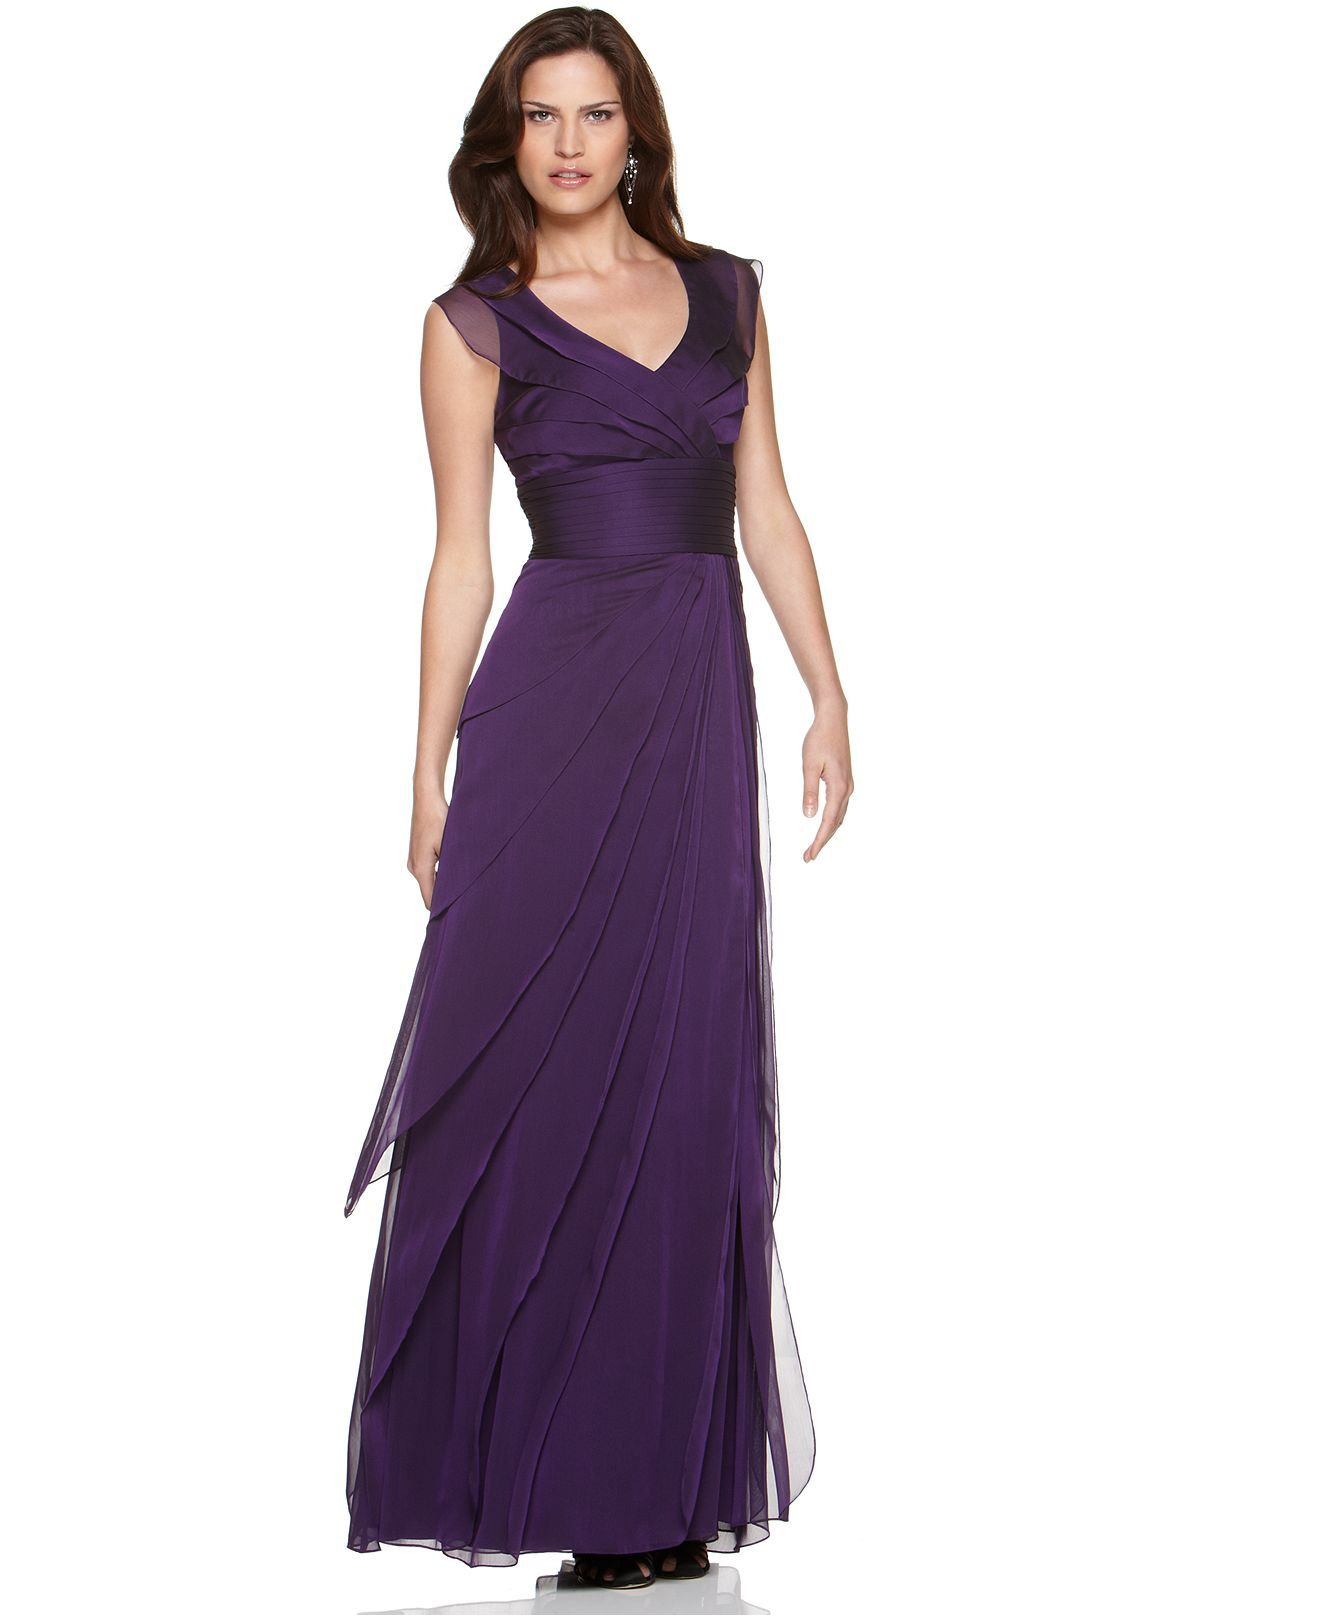 Mother of the Bride - Adrianna Papell Dress, Tiered Evening Dress ...